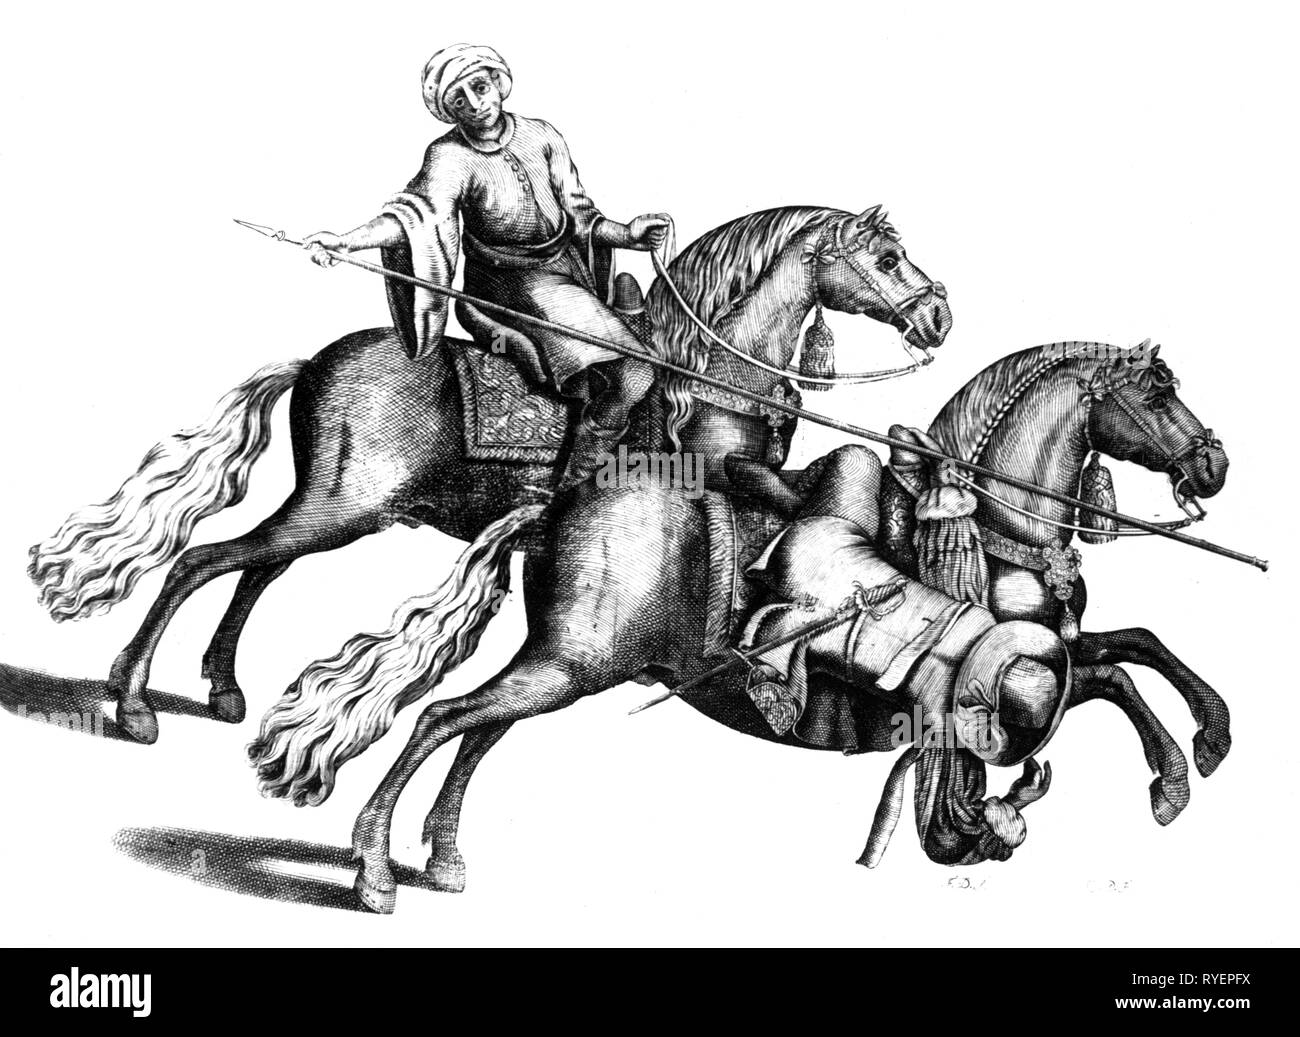 sports, riding, circus riding, a horseman is ducking under the lance of a Turk in gallop, 'Arte da Cavallaria' of Antonio Galvao de Andrade, printed by Joam da Costa, Lisboa, 1678, Additional-Rights-Clearance-Info-Not-Available - Stock Image